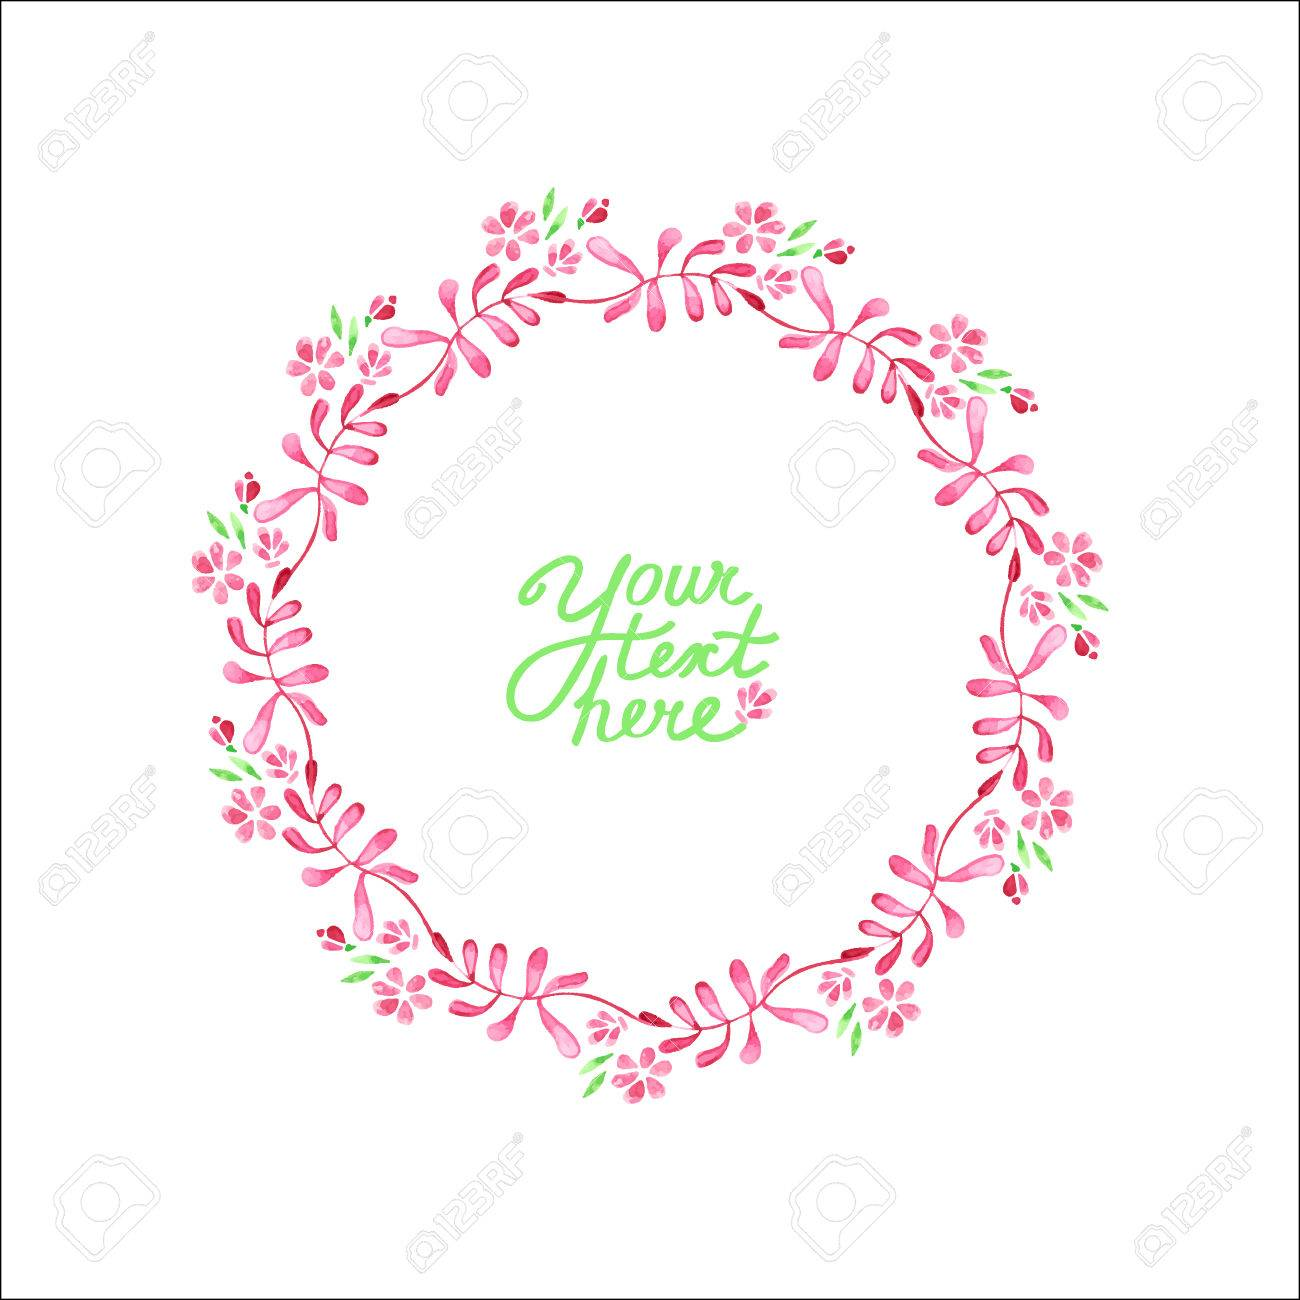 Vector Watercolor Flowers Circle Frame It Can Be Used For Invitation